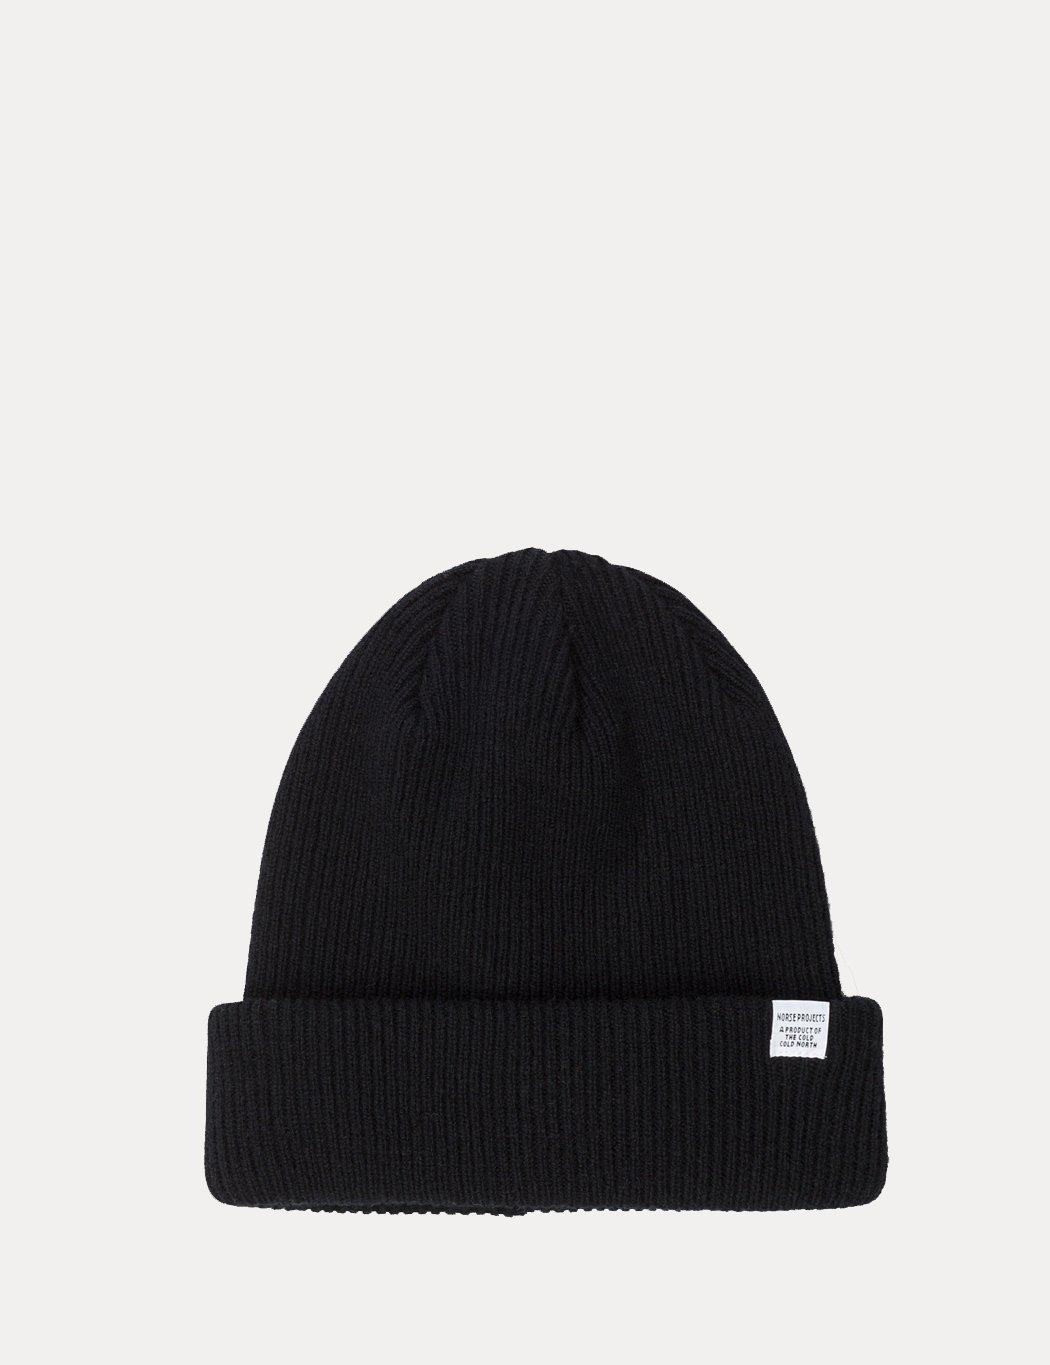 590b8dff113 Norse Projects Norse Top Beanie in Black for Men - Save 44% - Lyst